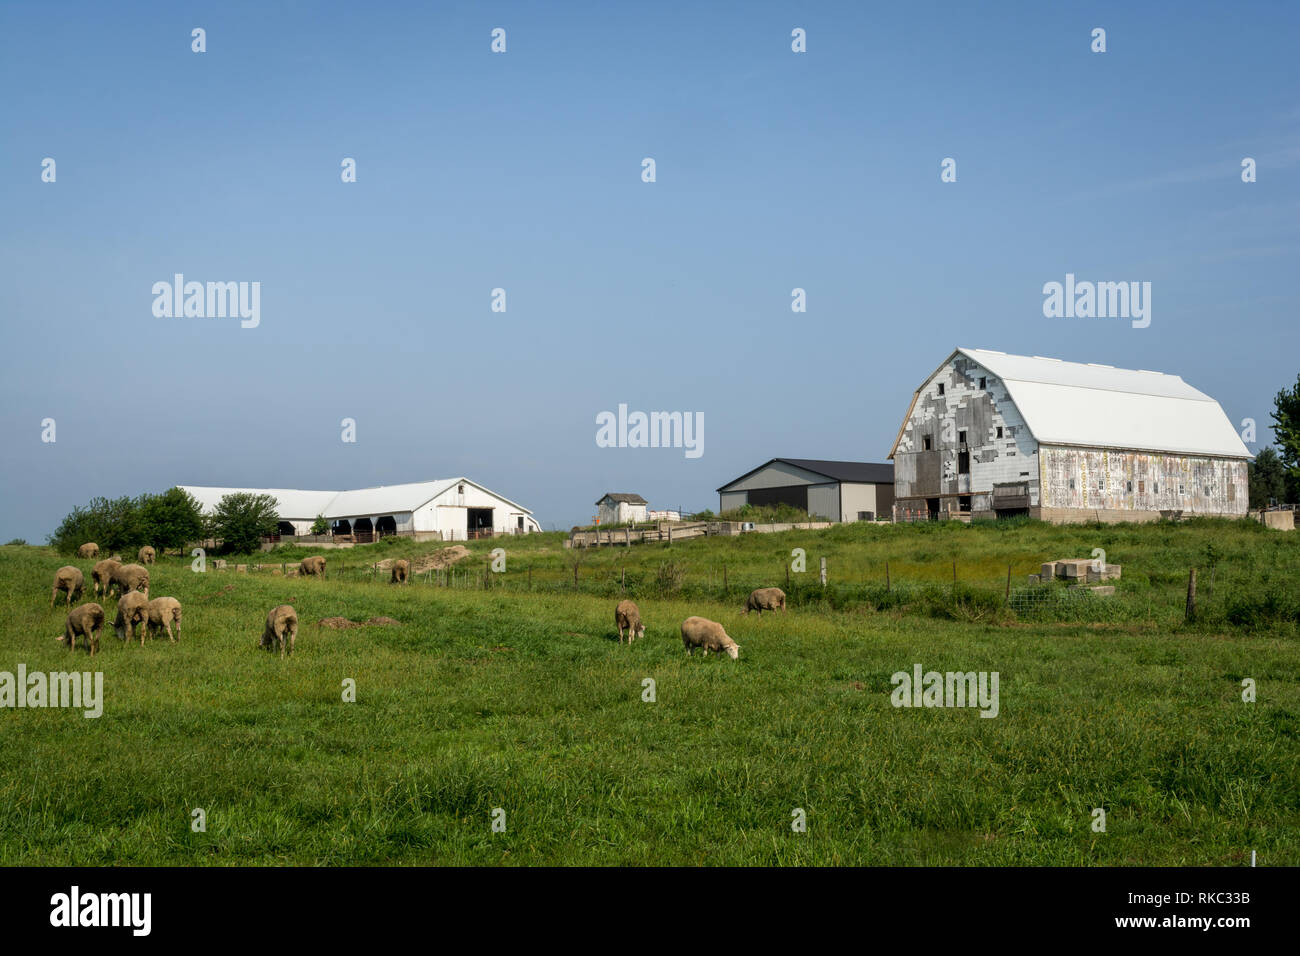 Rural midwest sheep farm. - Stock Image